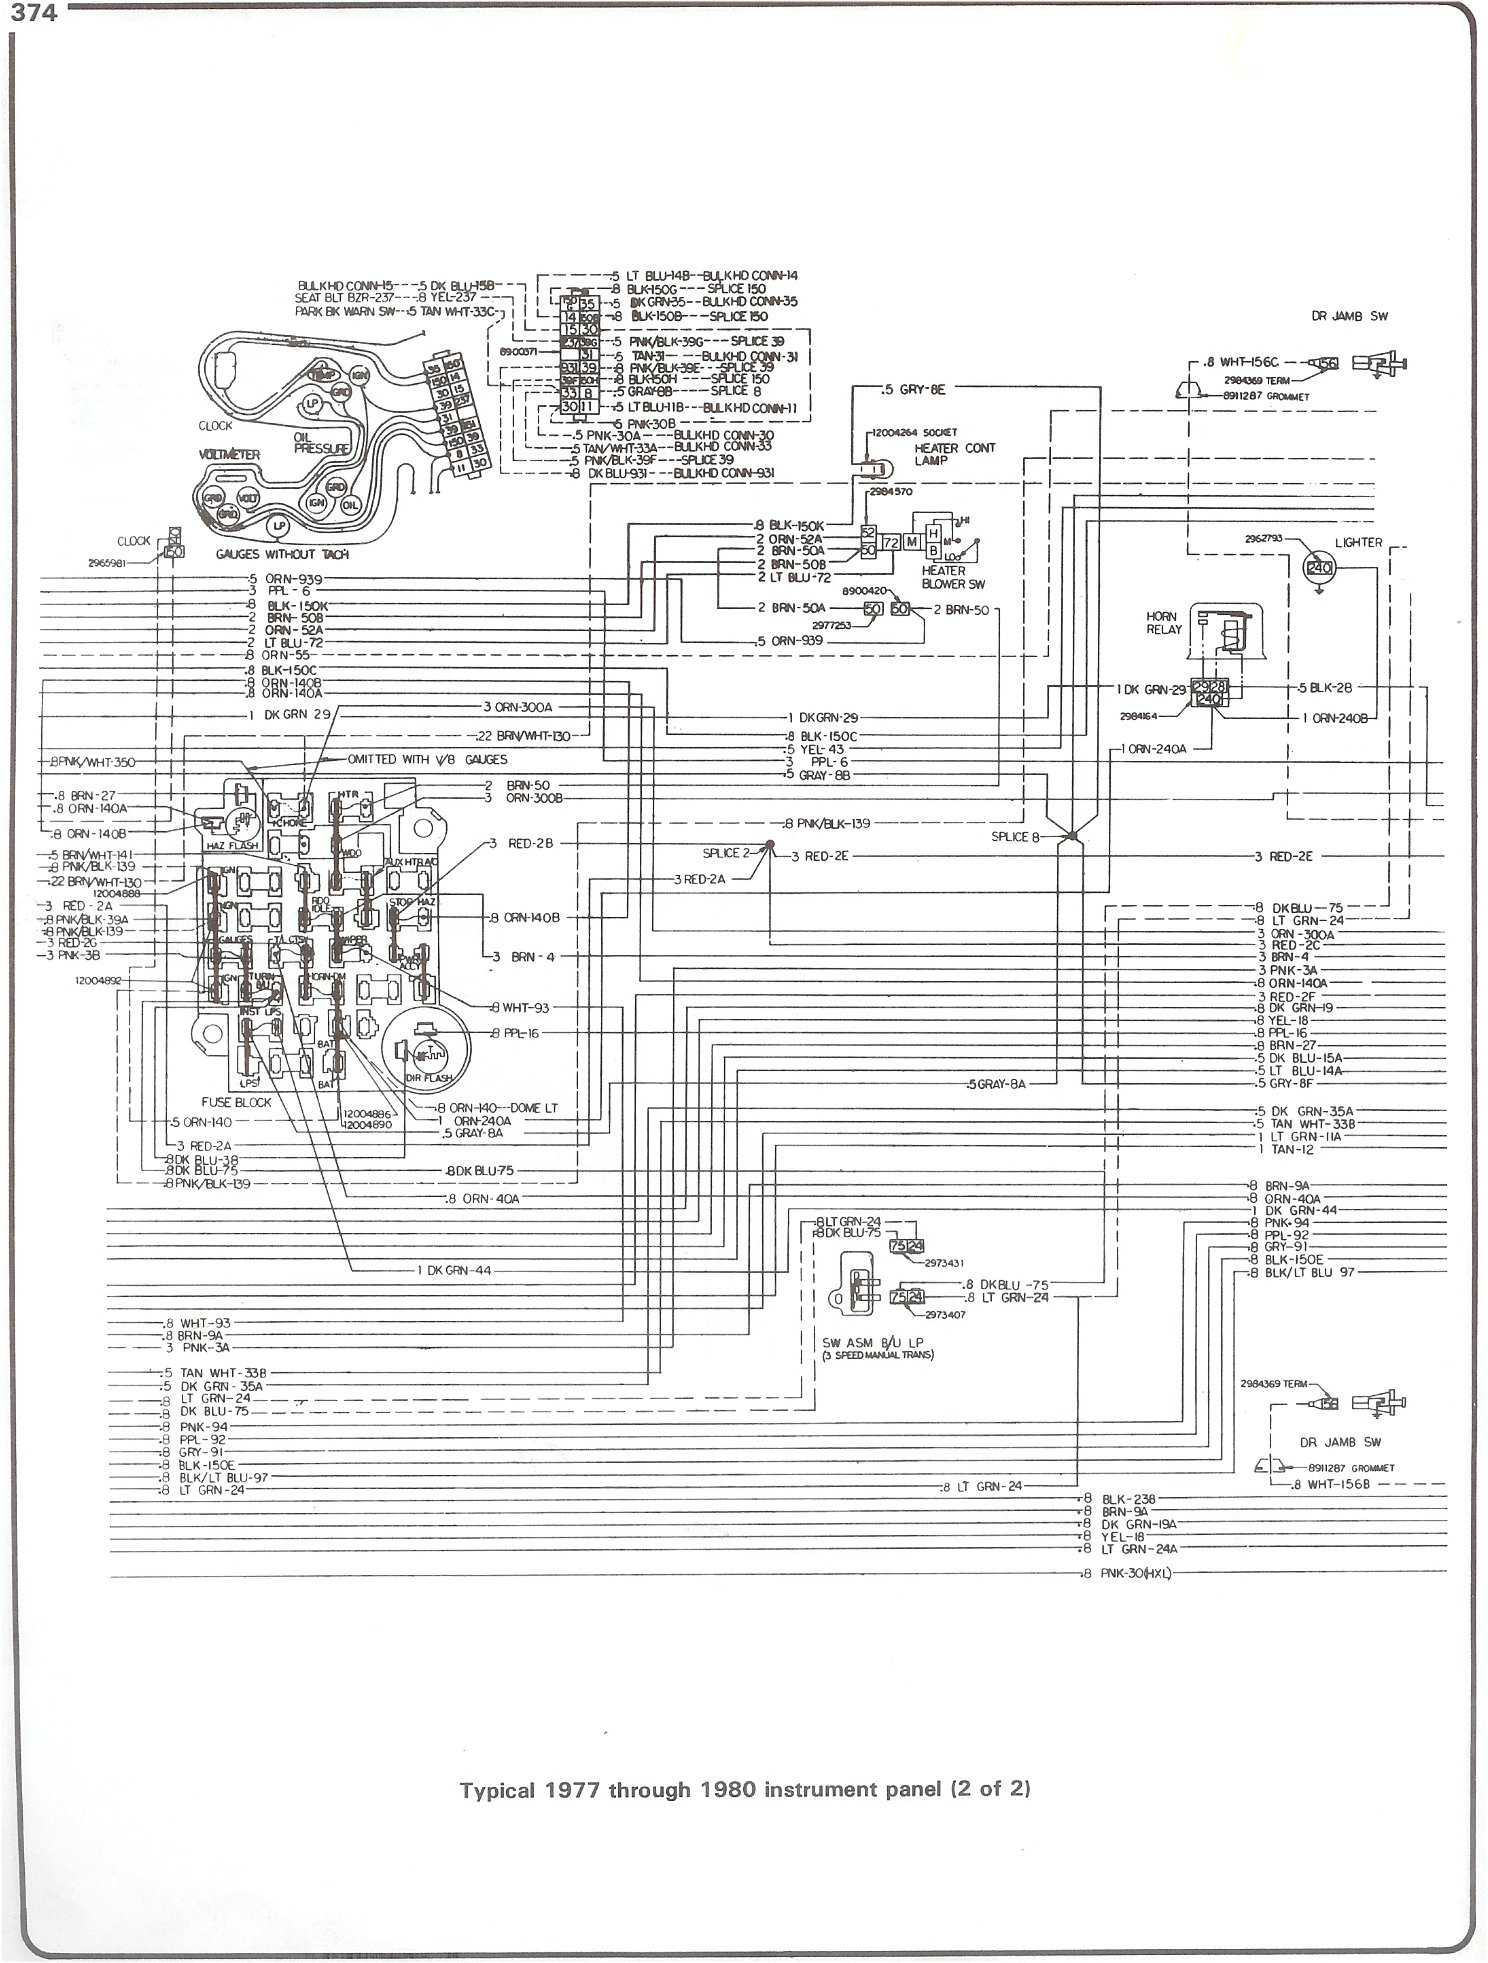 complete 73 87 wiring diagrams rh forum 73 87chevytrucks com 86 chevy k10 wiring diagram 1986 chevy k10 stereo wiring diagram